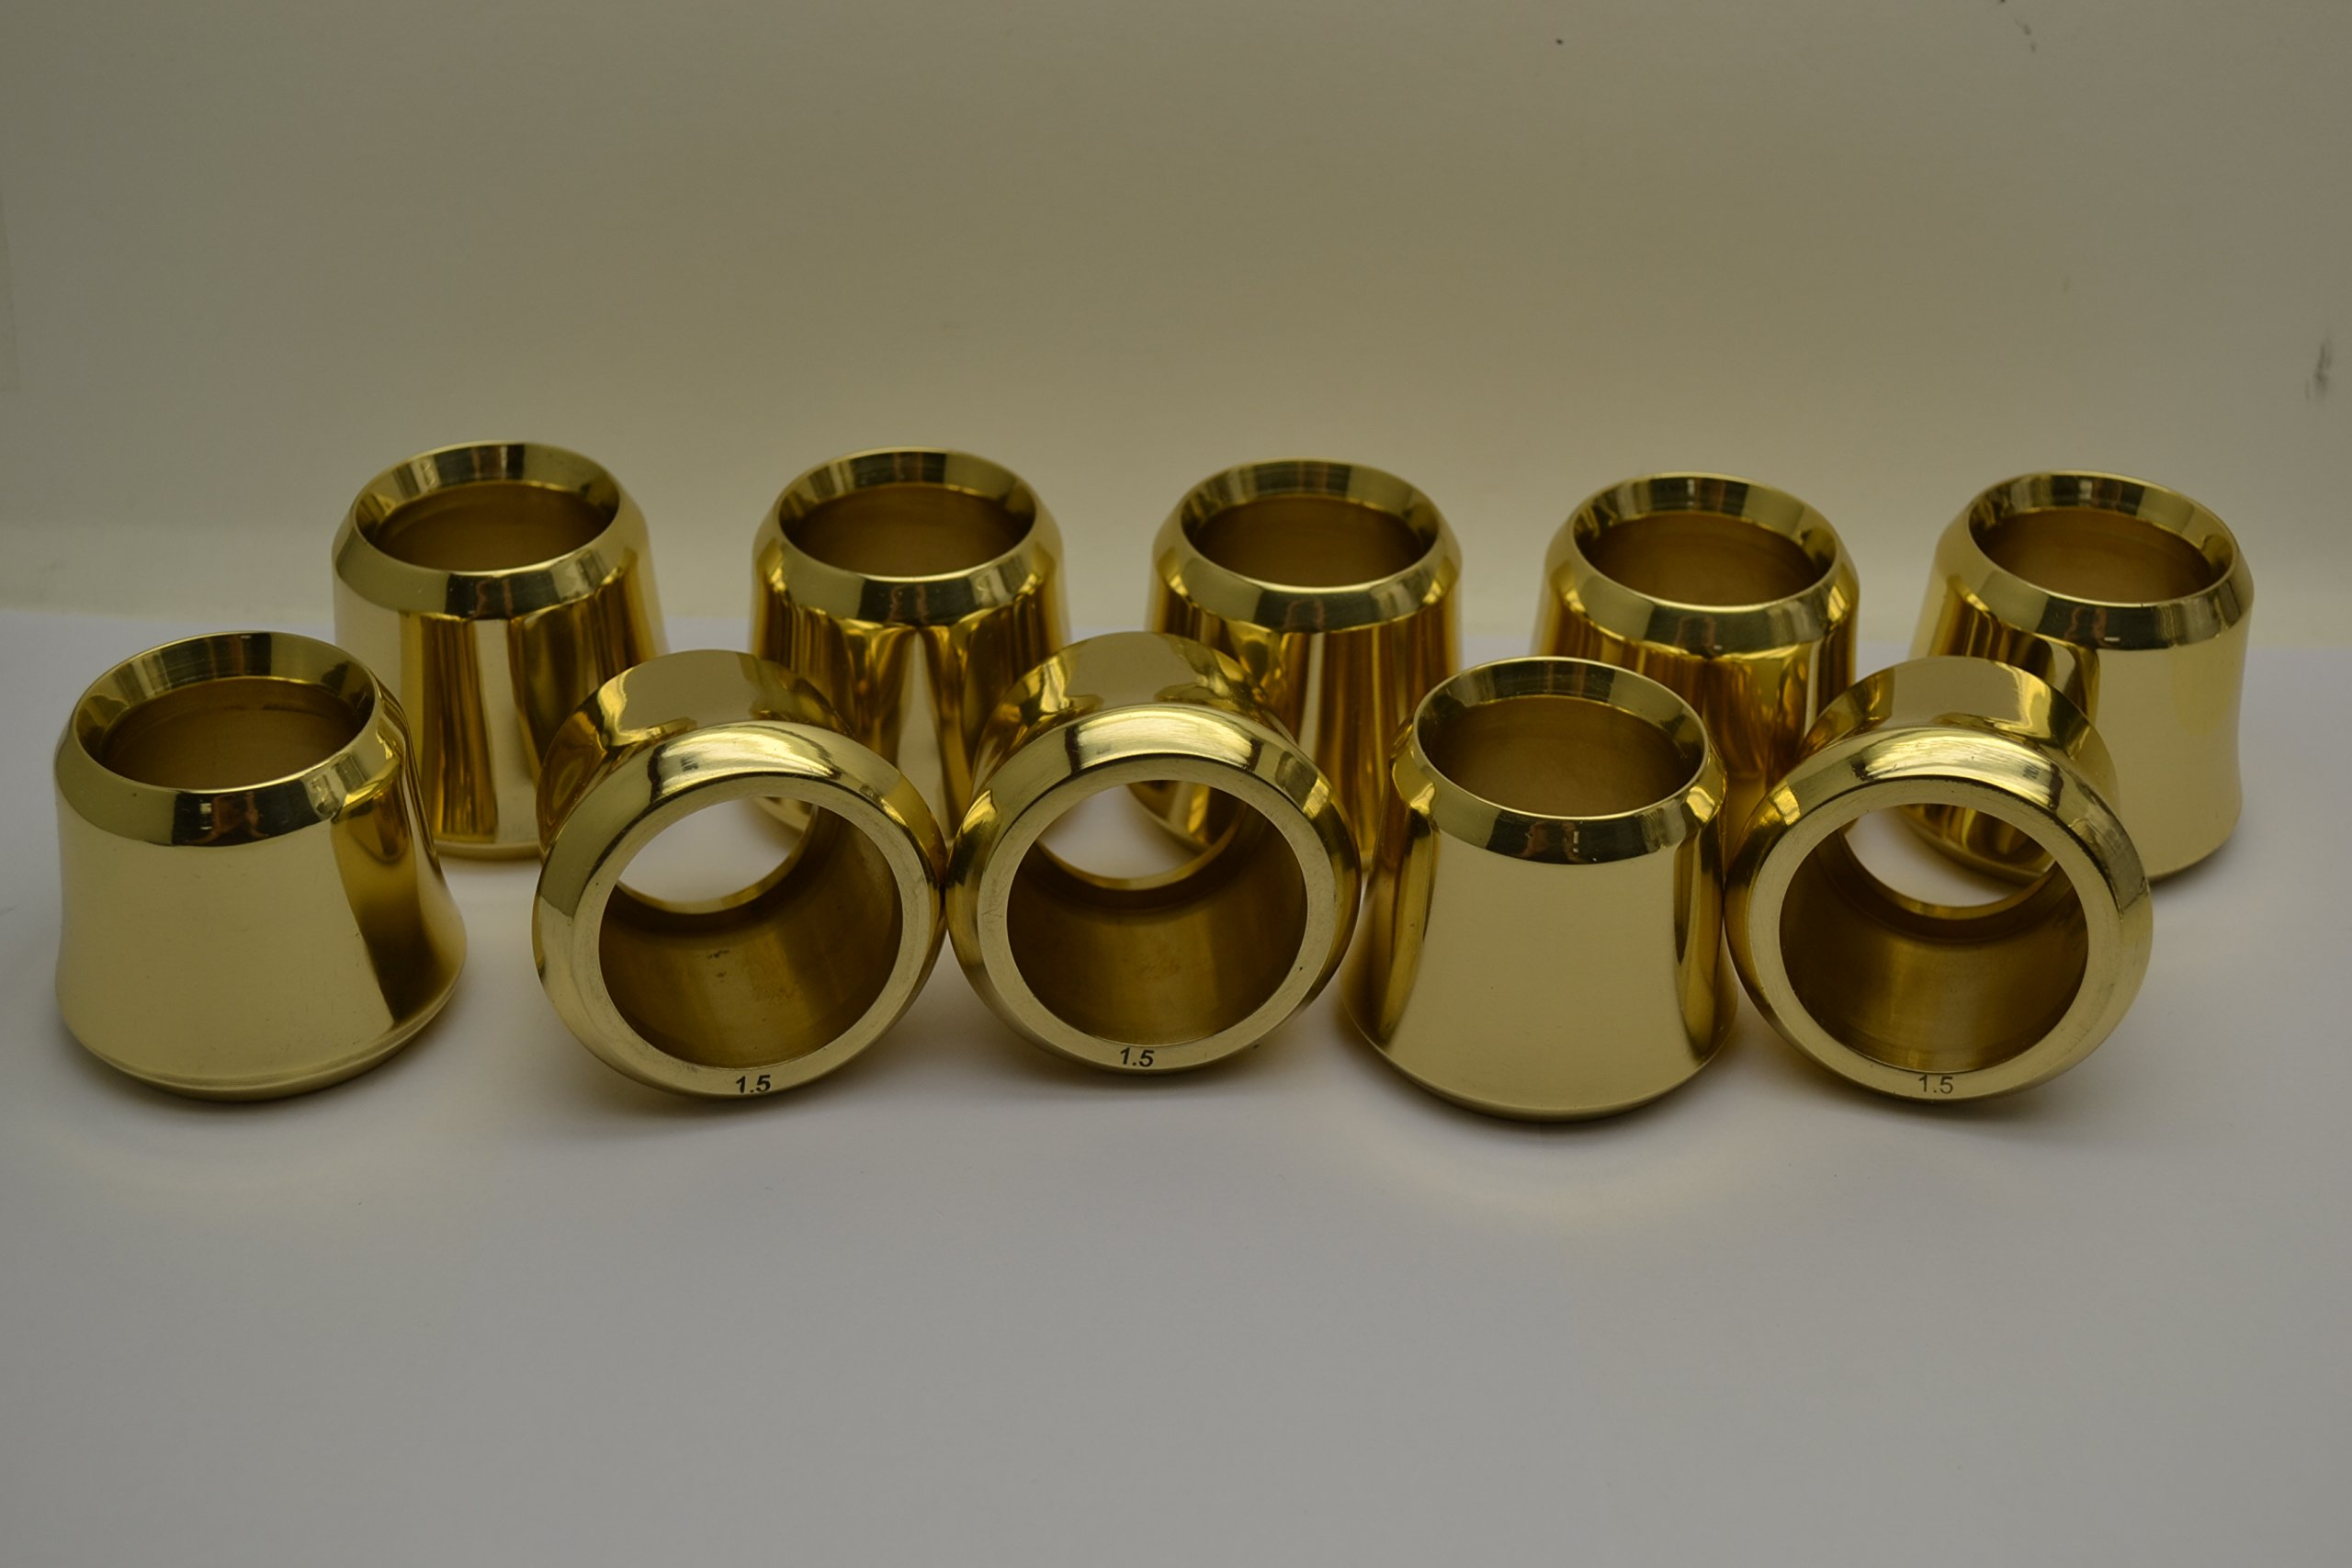 Classical Church Goods Set of 10 Solid Brass Candle Followers 1 1/2'' Size, Burners (Set of 10) by Classical Church Goods (Image #2)